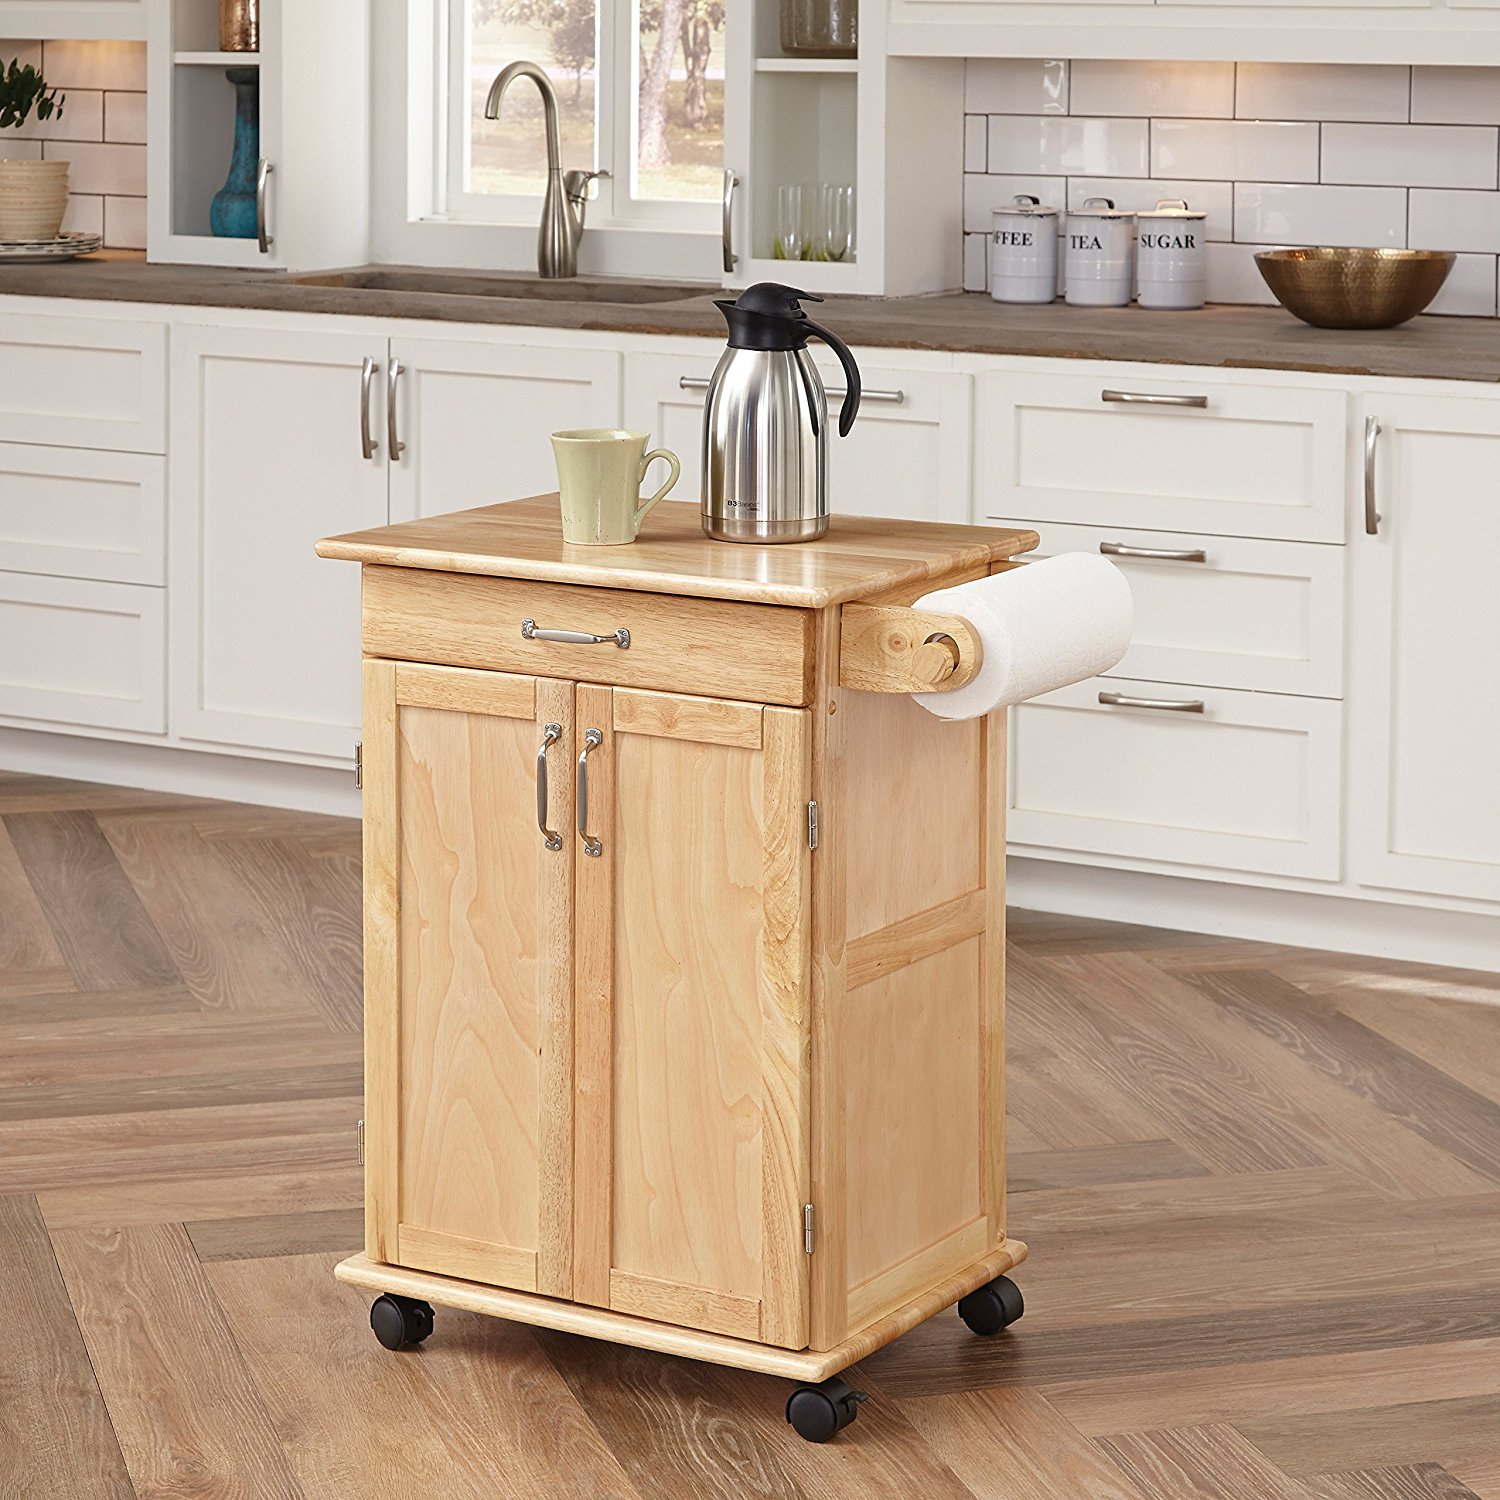 Kitchen Cart With Drawers: Kitchen Utility Cart With Drawers